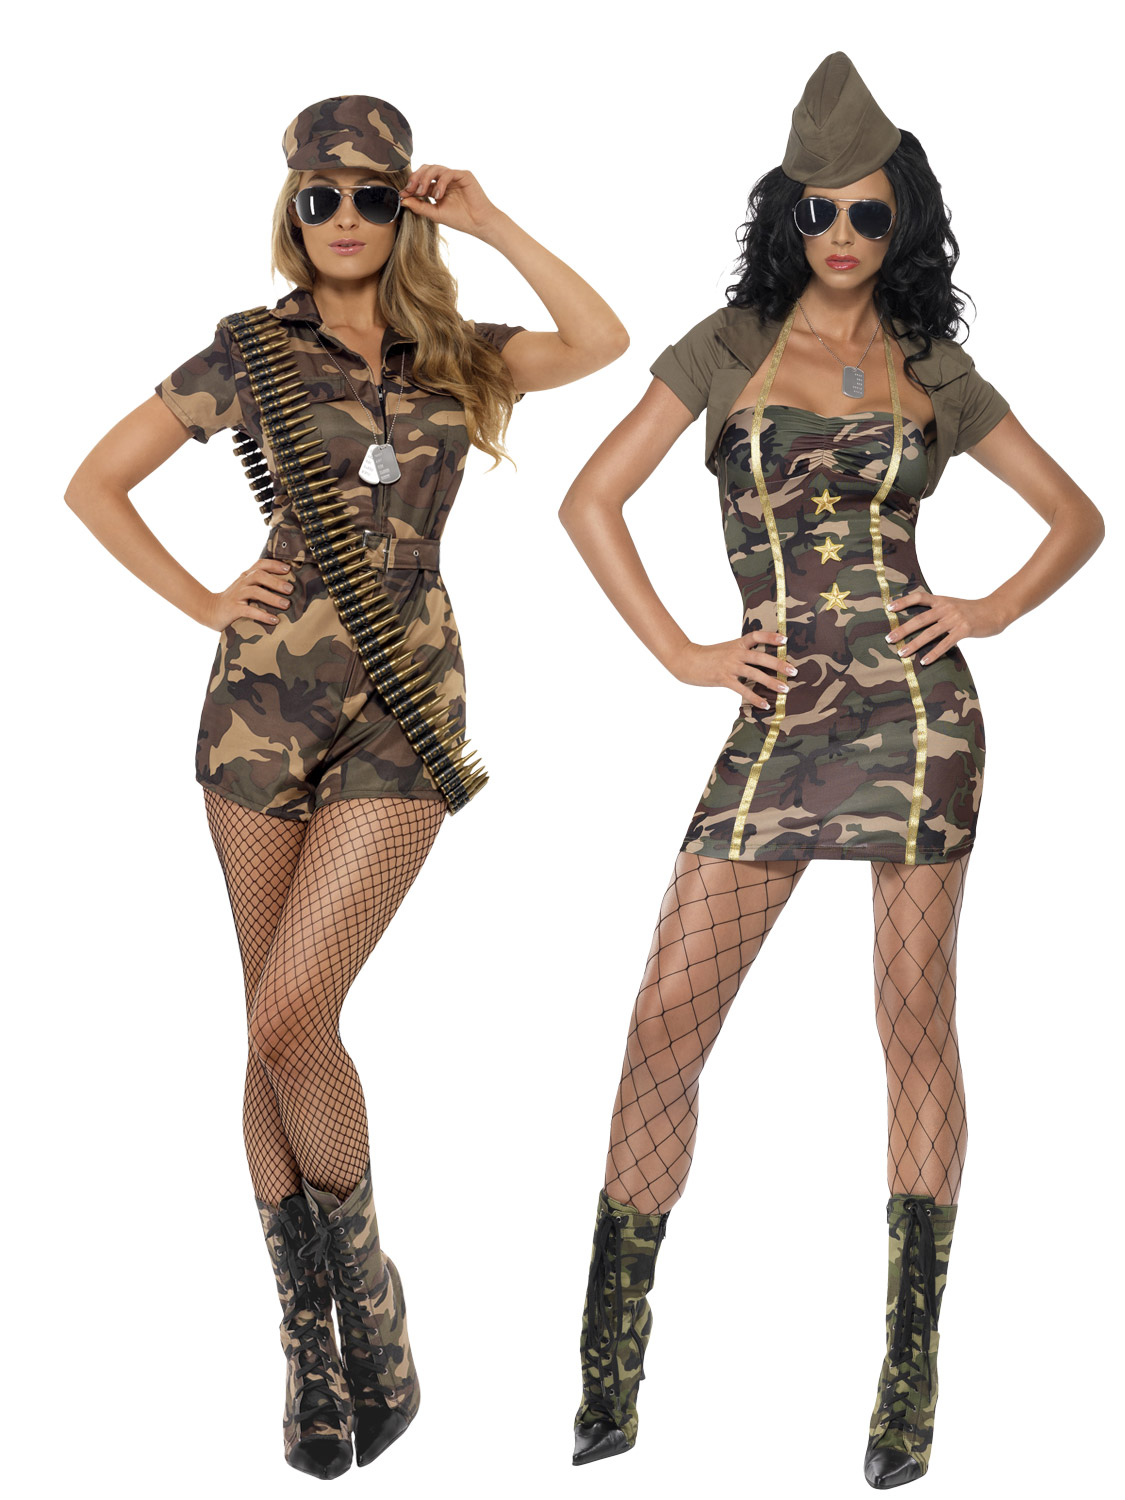 Ladies Army Playsuit Military Uniform Fancy Dress Costume Outfit 4-22 Plus Size